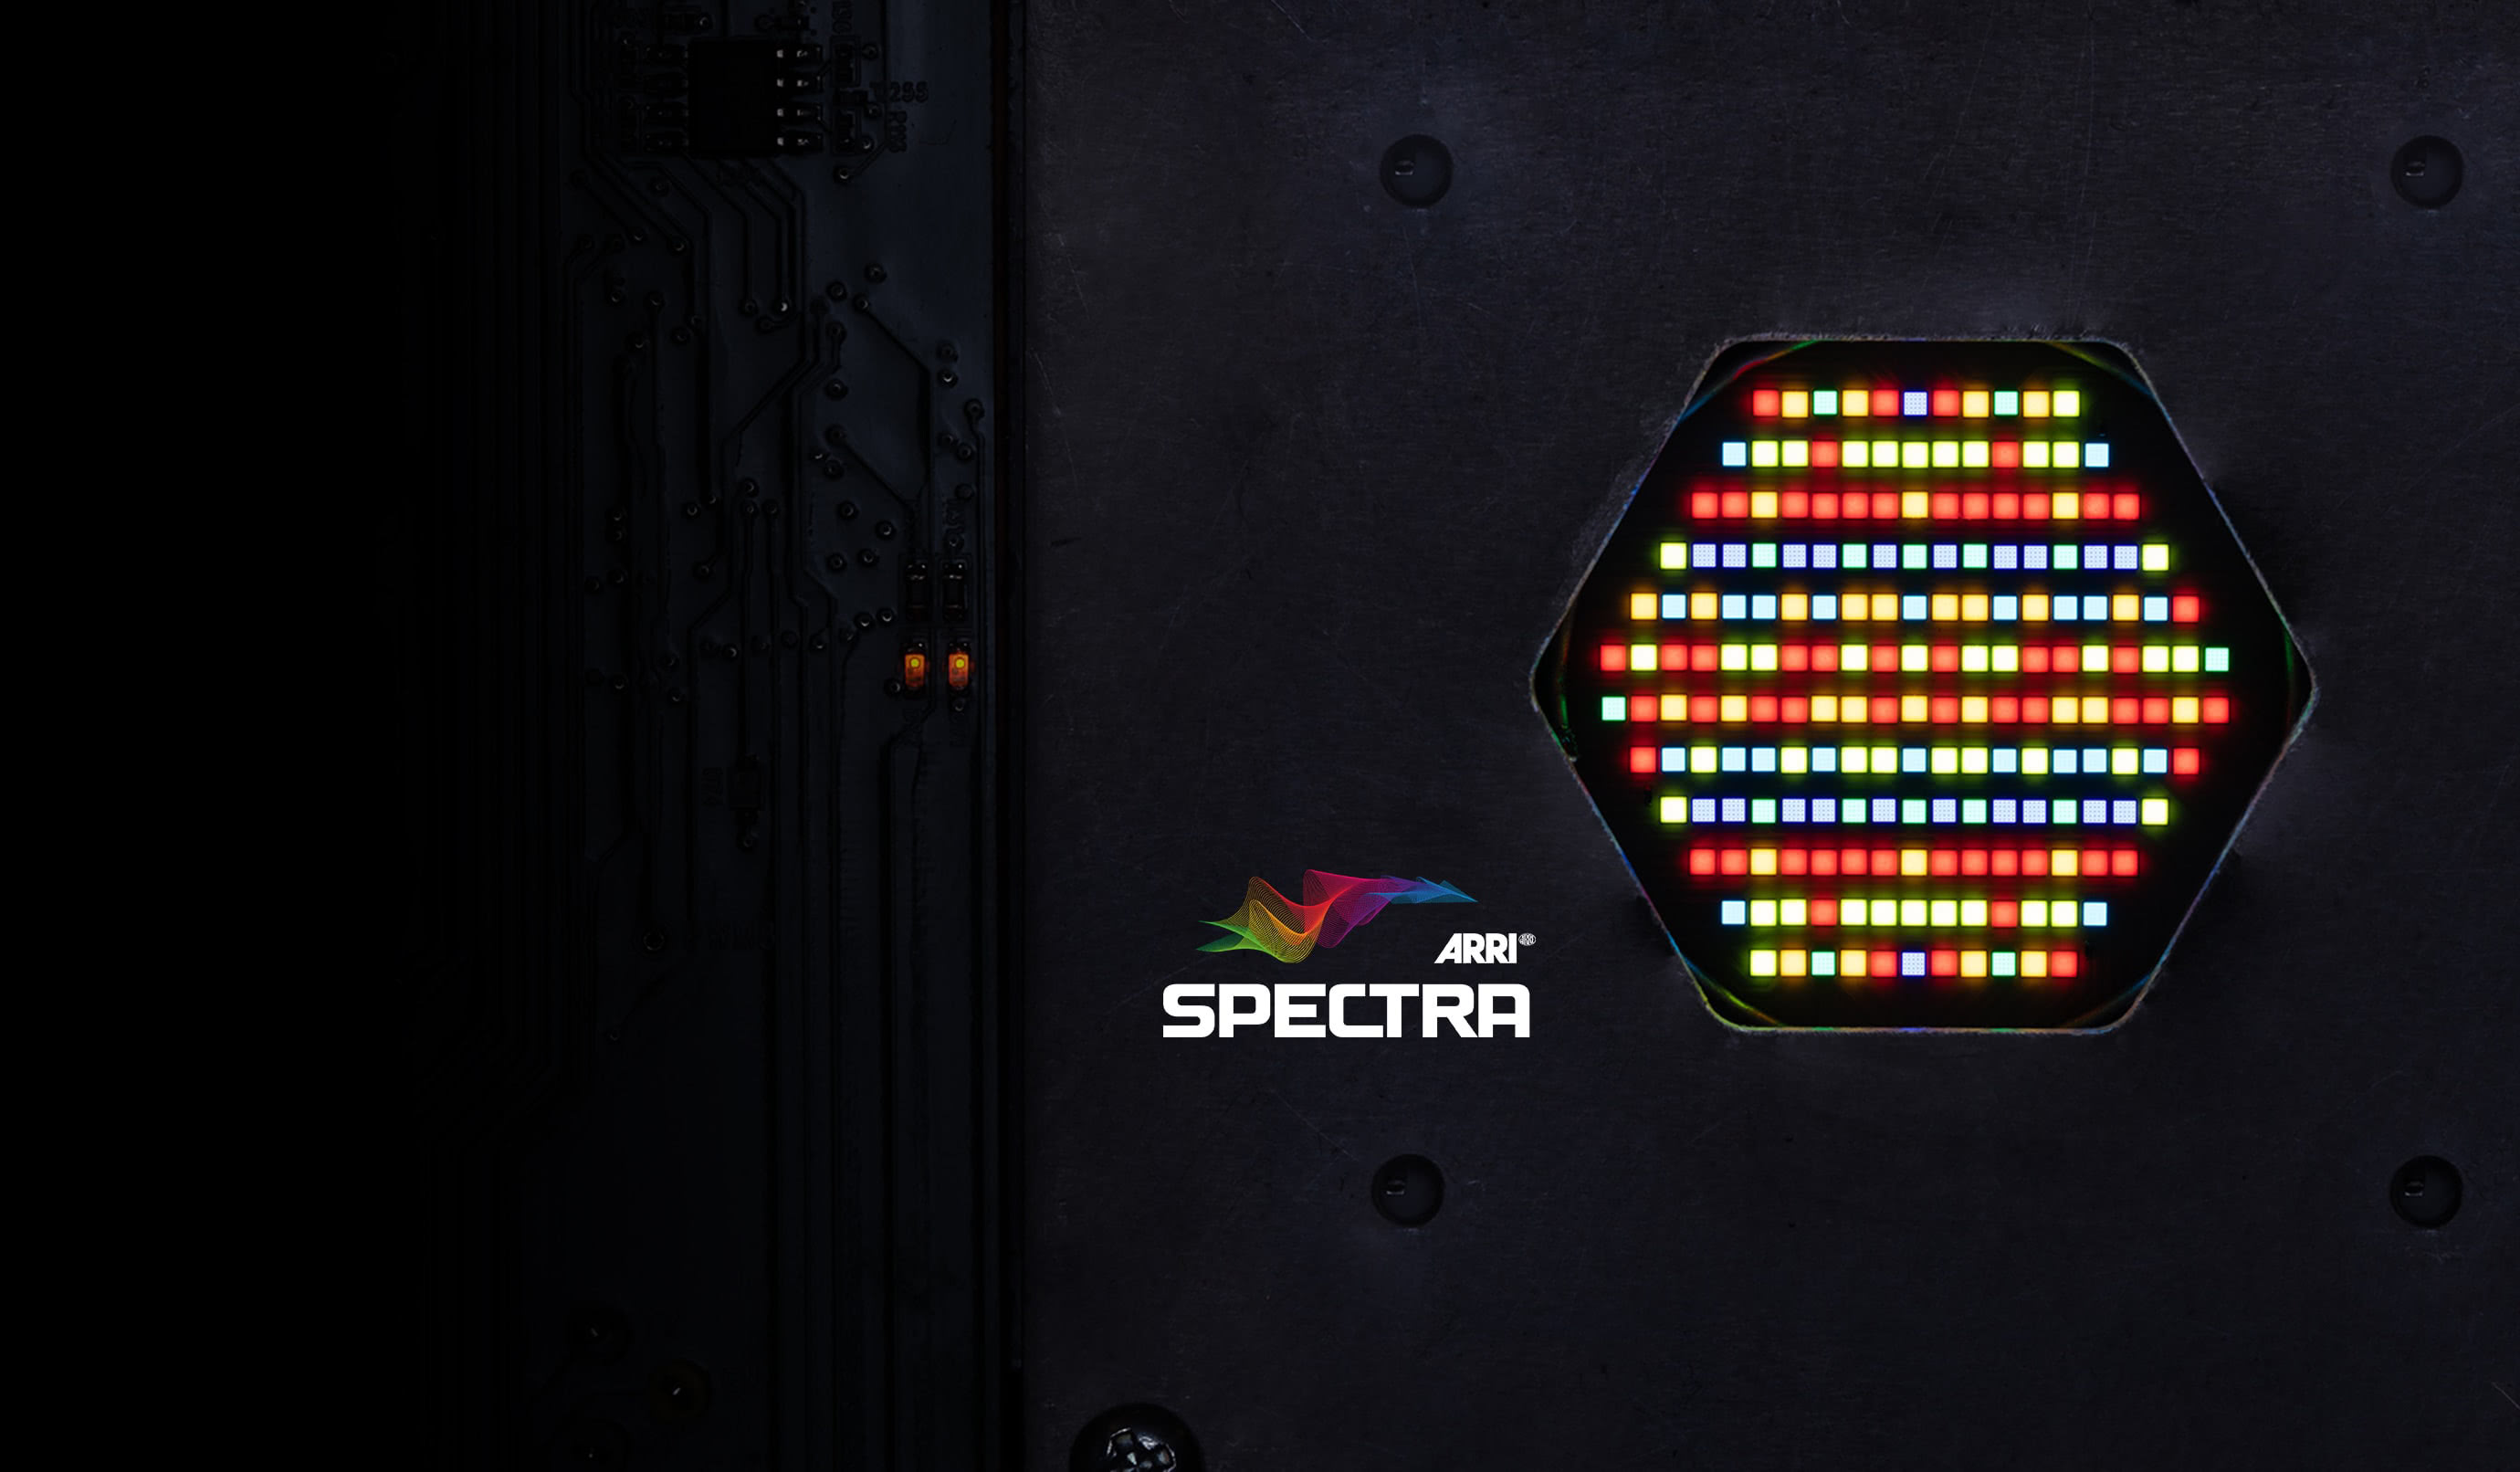 ARRI Spectra six-color light engine